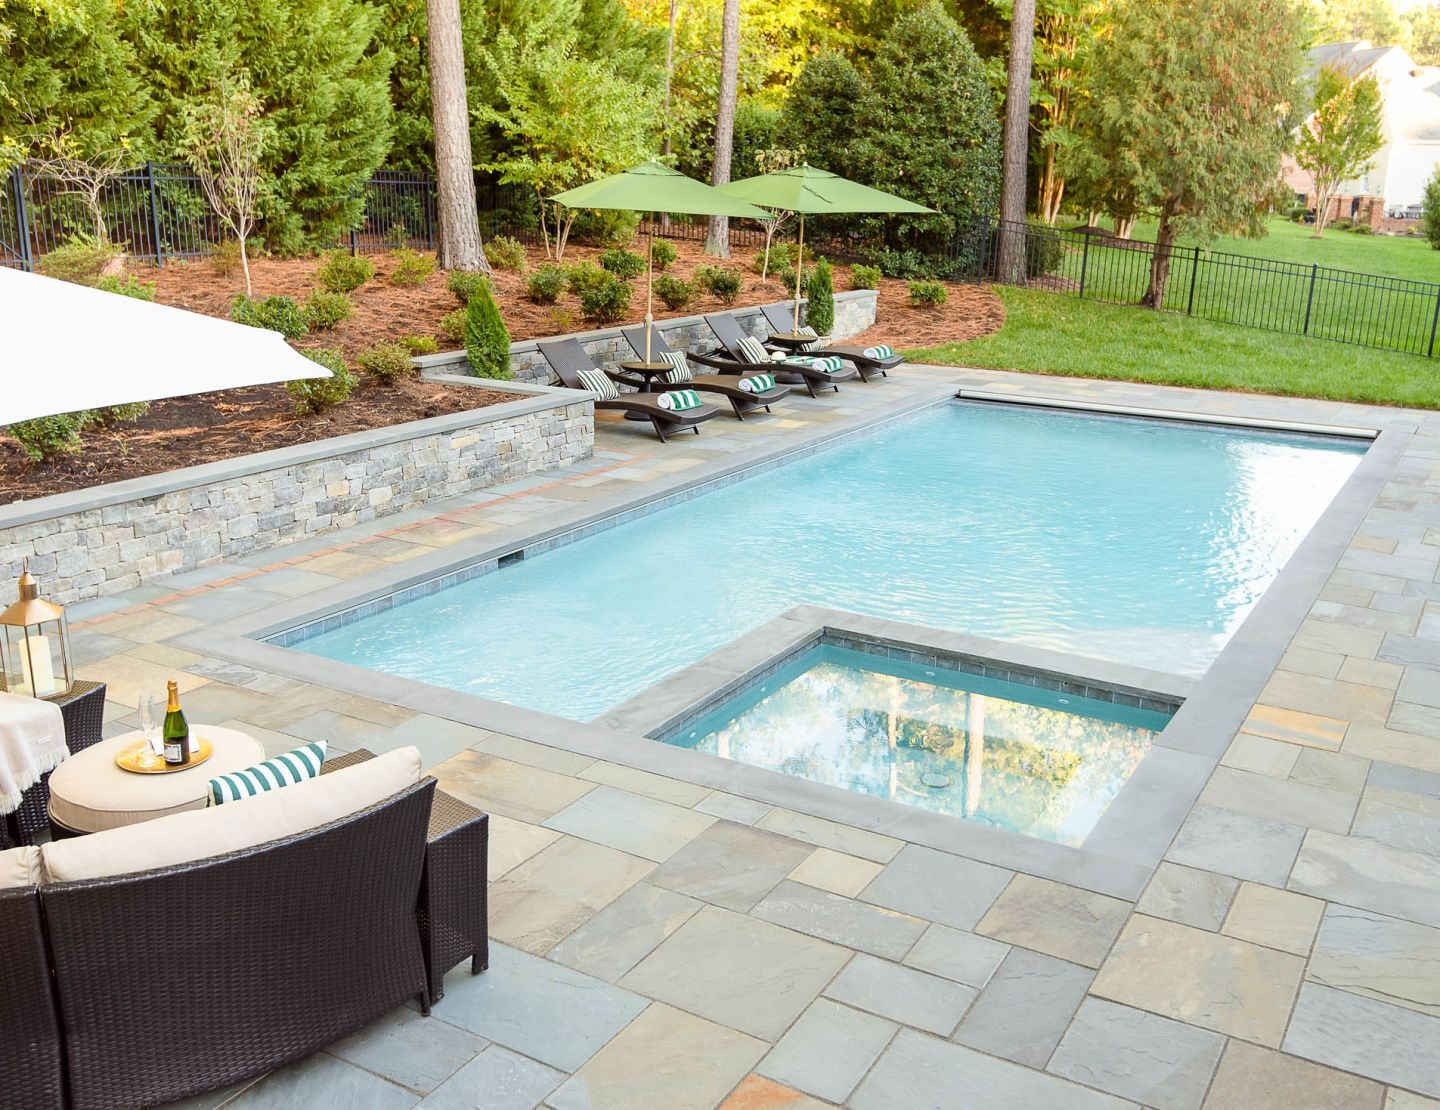 Pool and Hot Tub with stone patio and stone wall